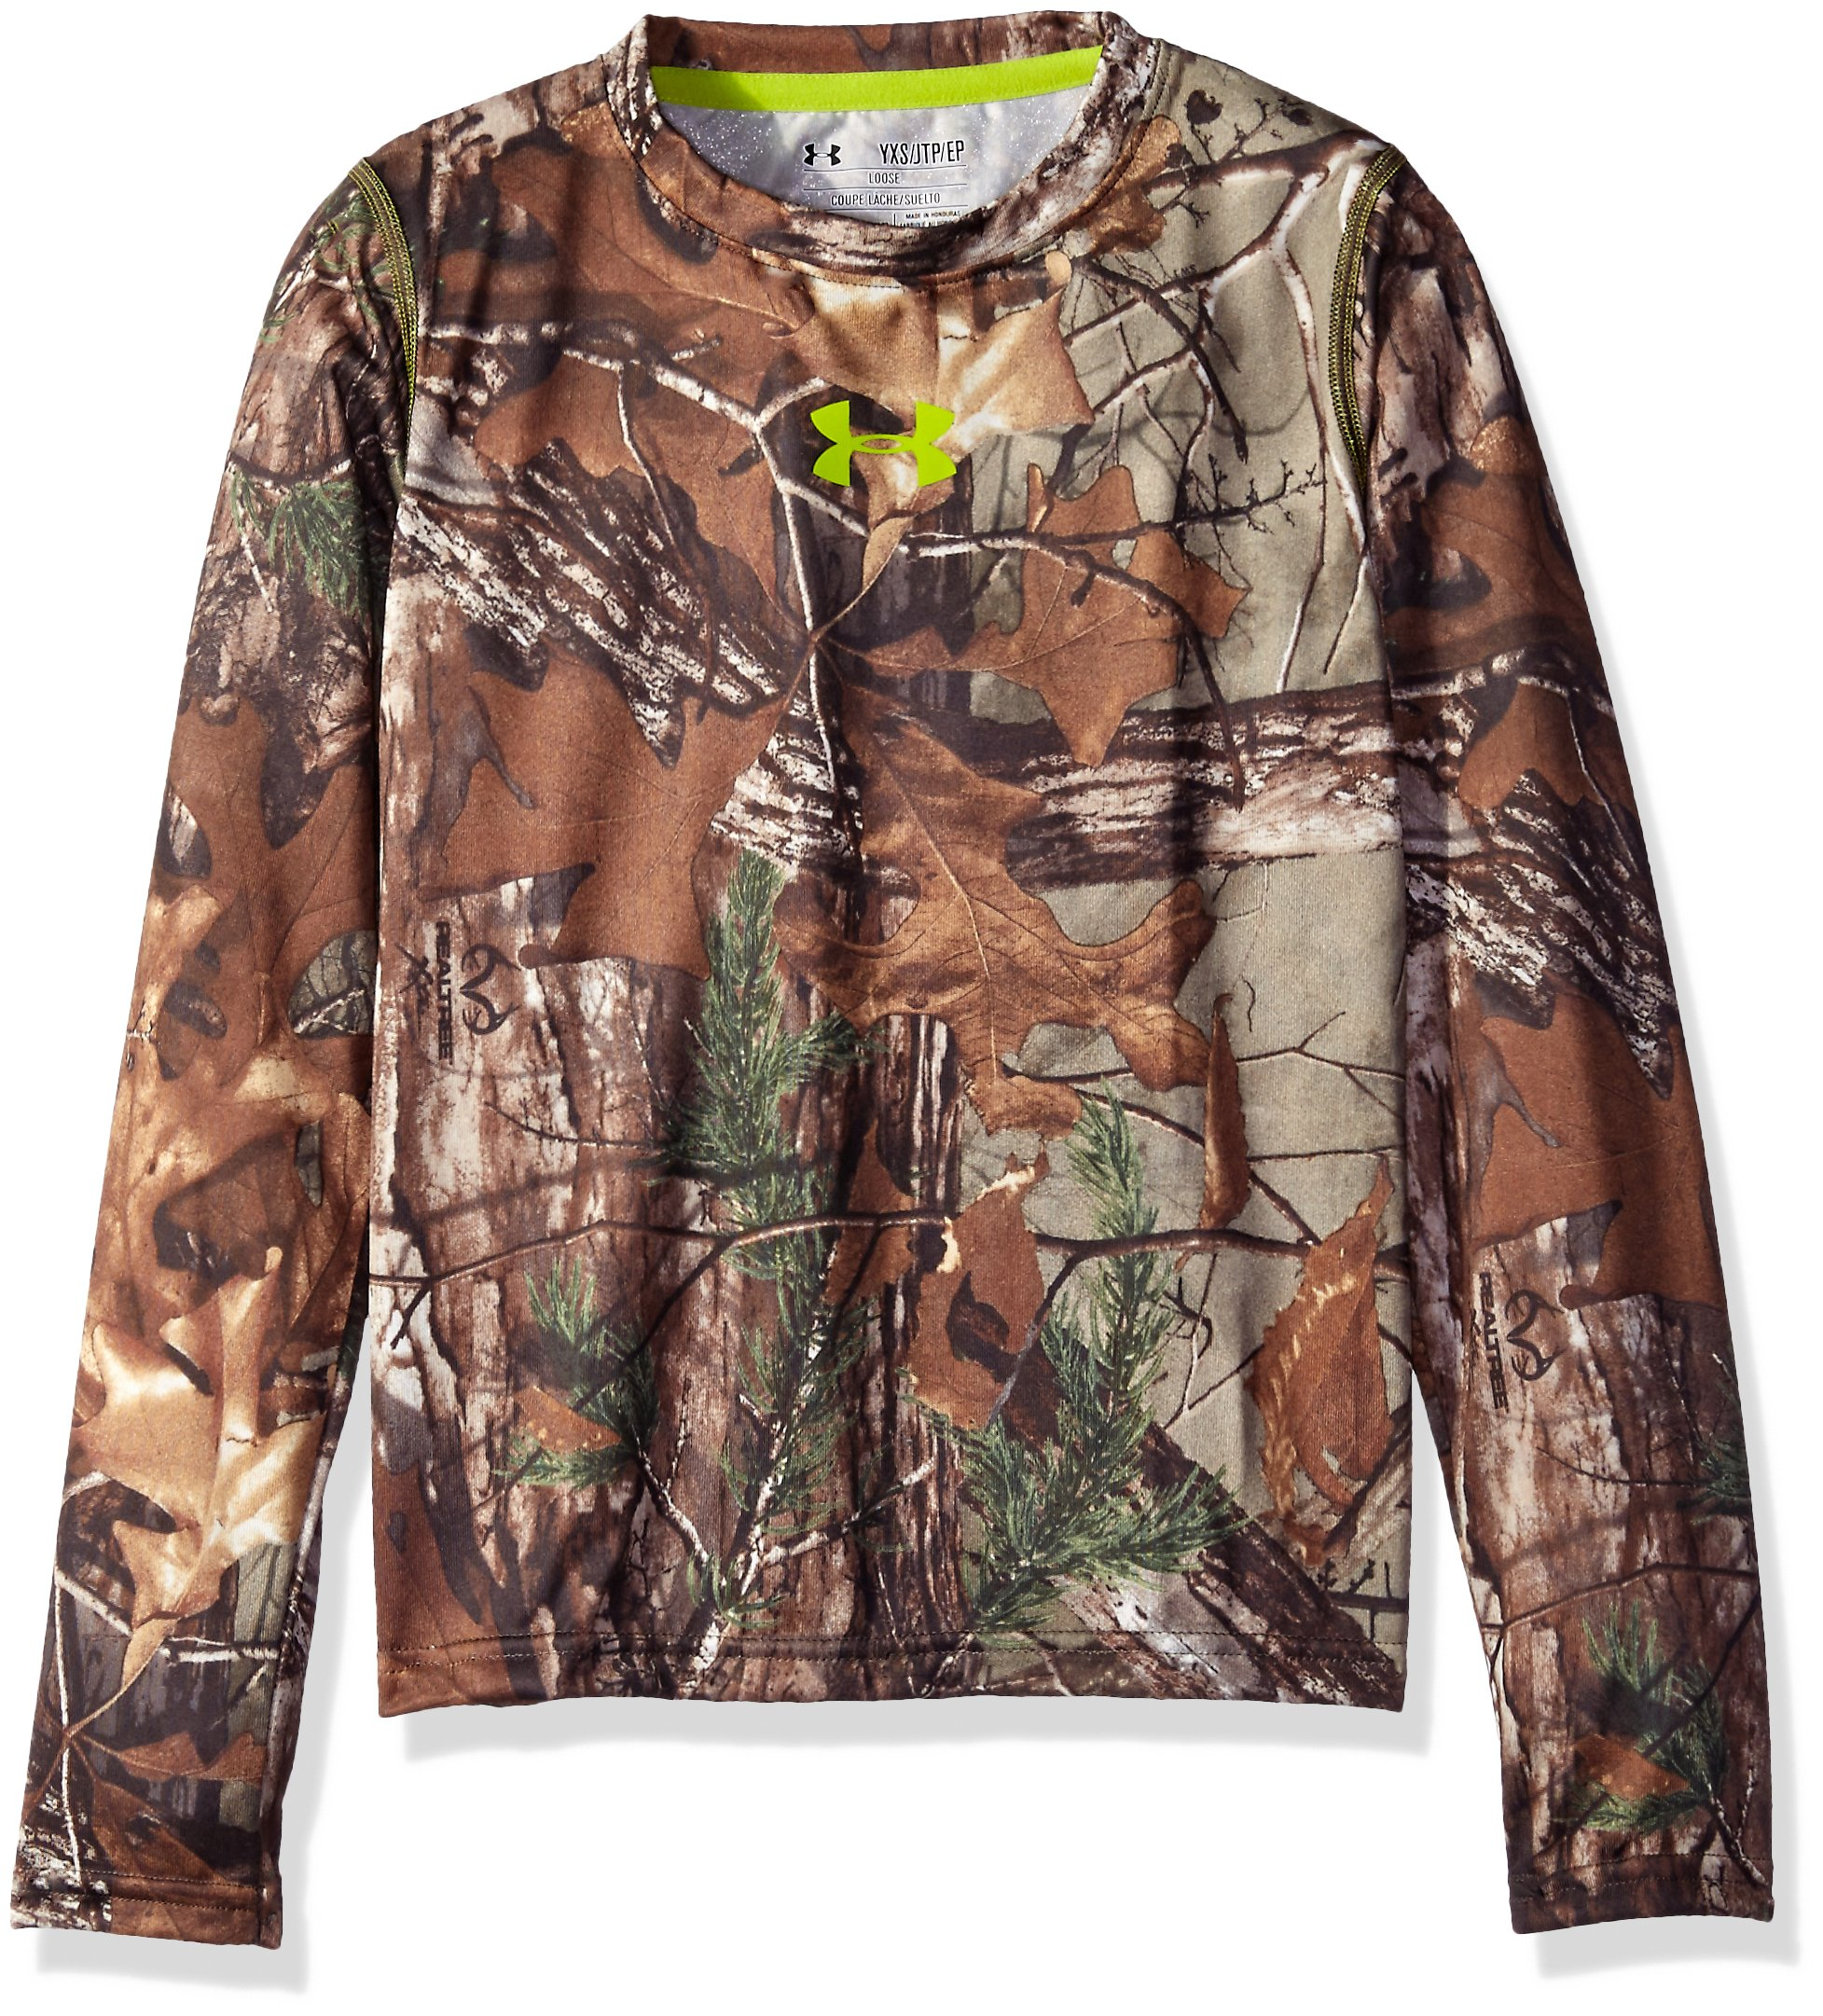 Under Armour Boys' Tech Scent Control Long Sleeve T-Shirt, Realtree Ap-Xtra /Velocity, Youth Small by Under Armour